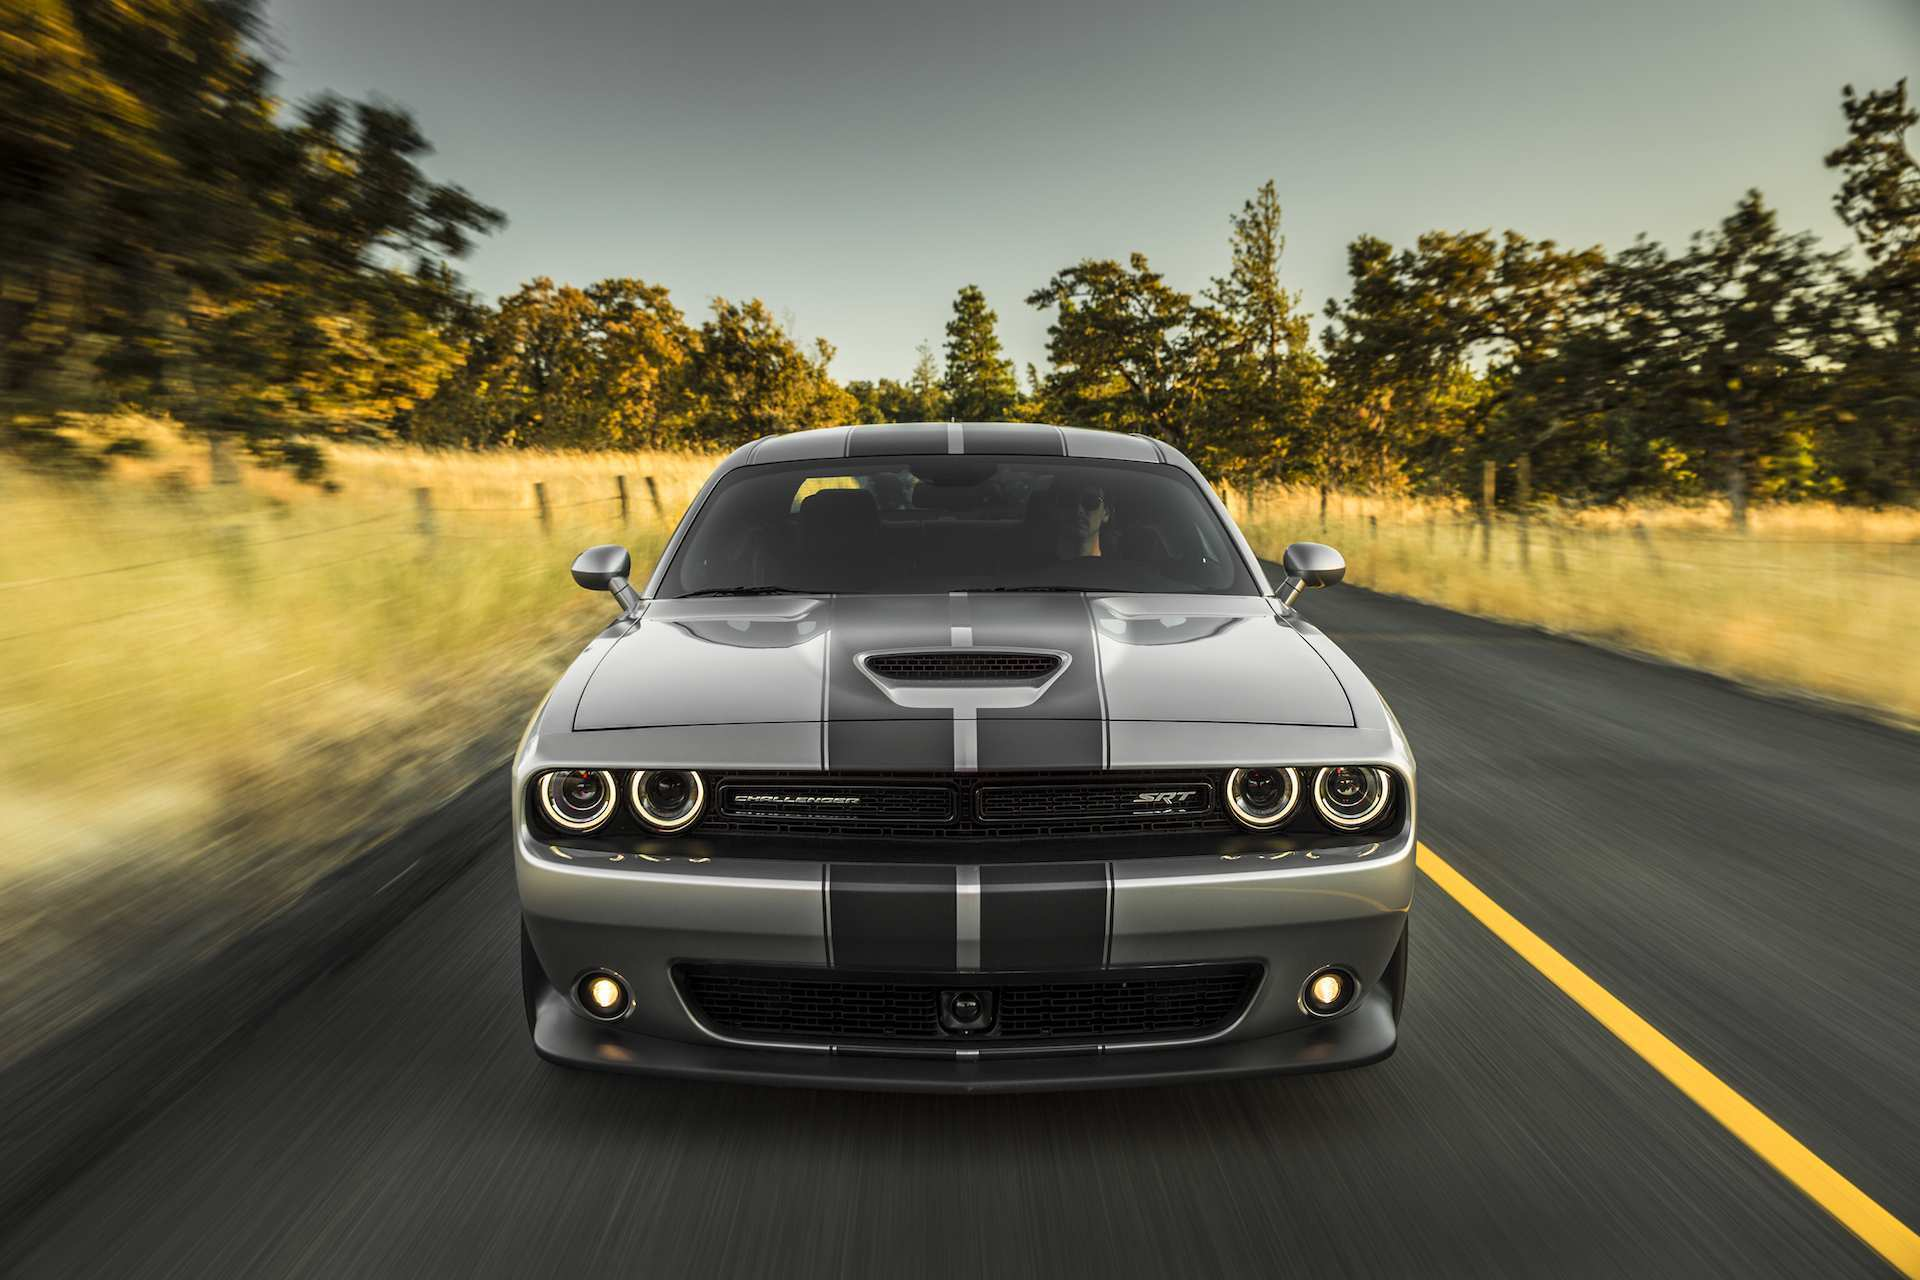 47 All New 2020 Dodge Challenger Srt Prices with 2020 Dodge Challenger Srt